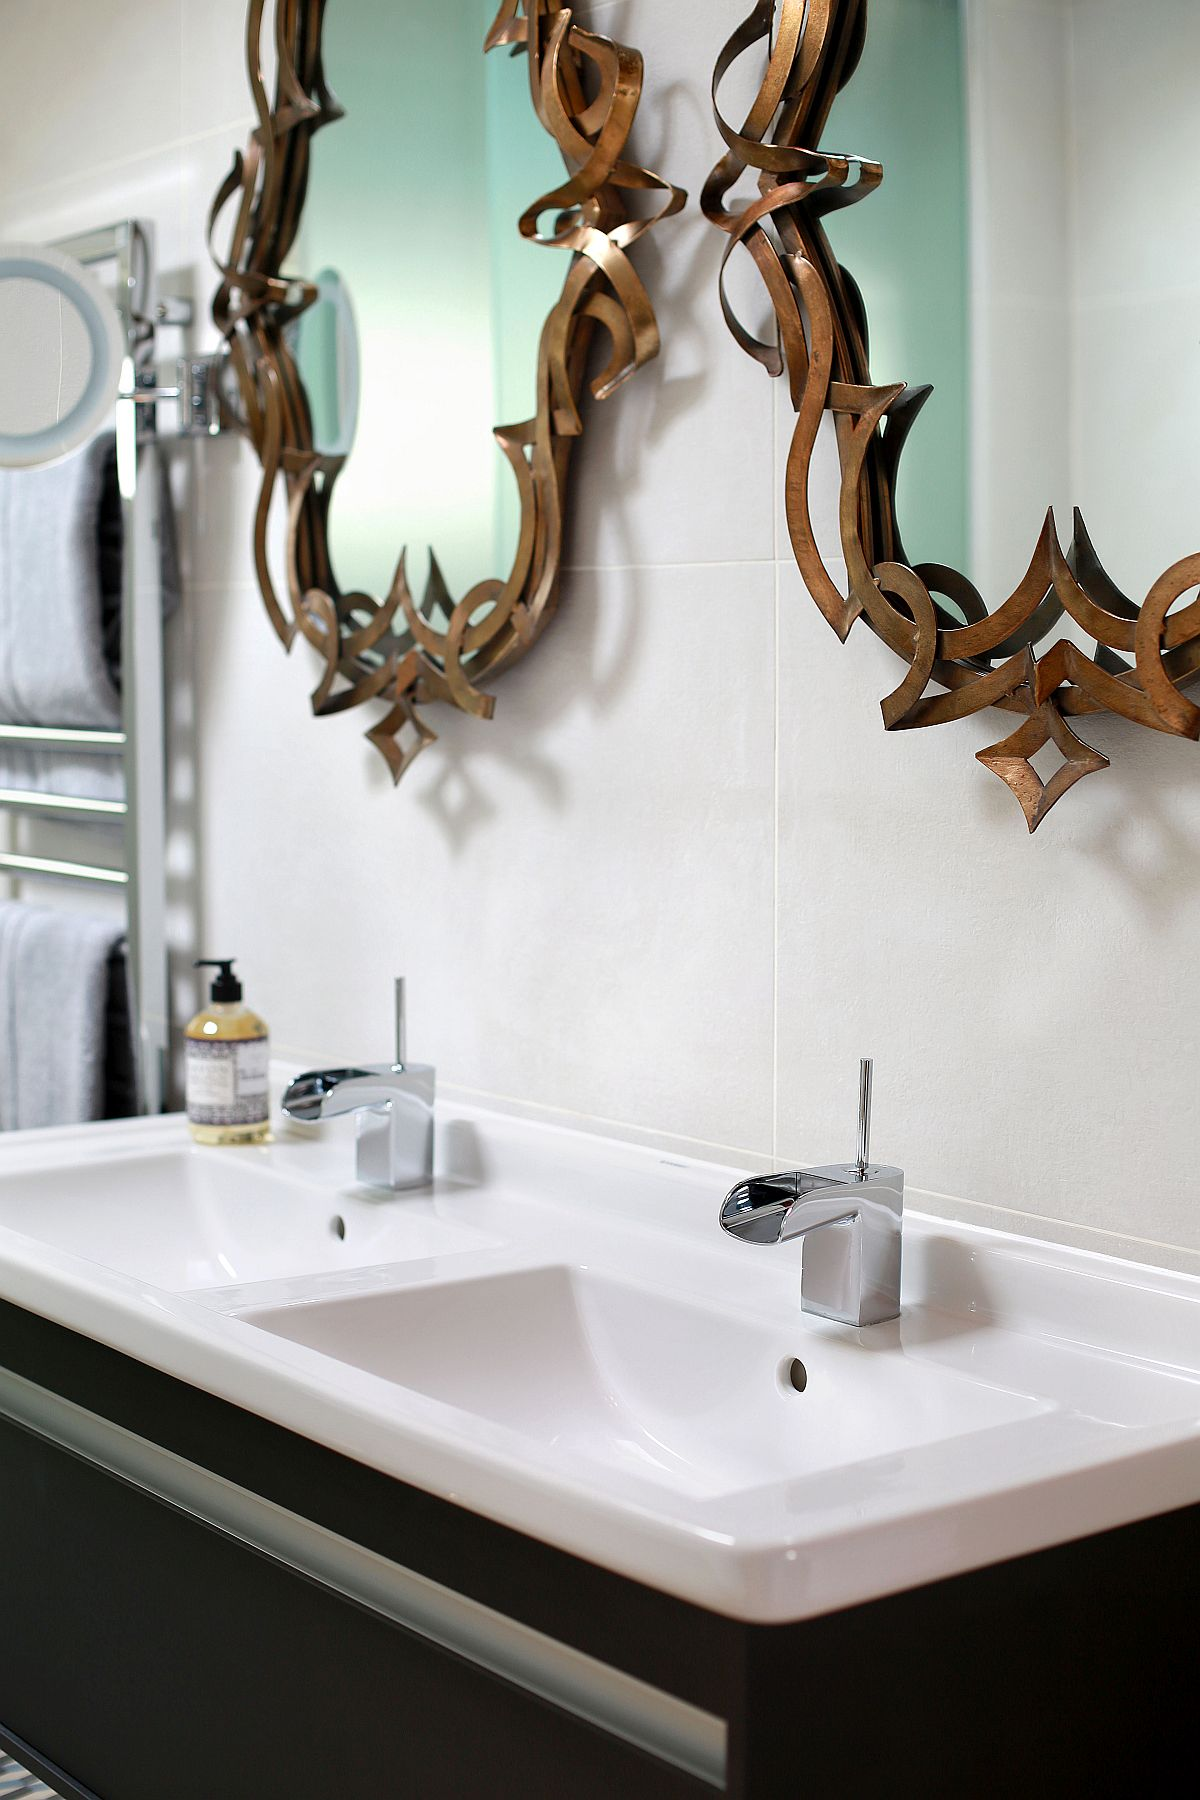 A closer look at the floating bathroom vanity and bronze mirrors